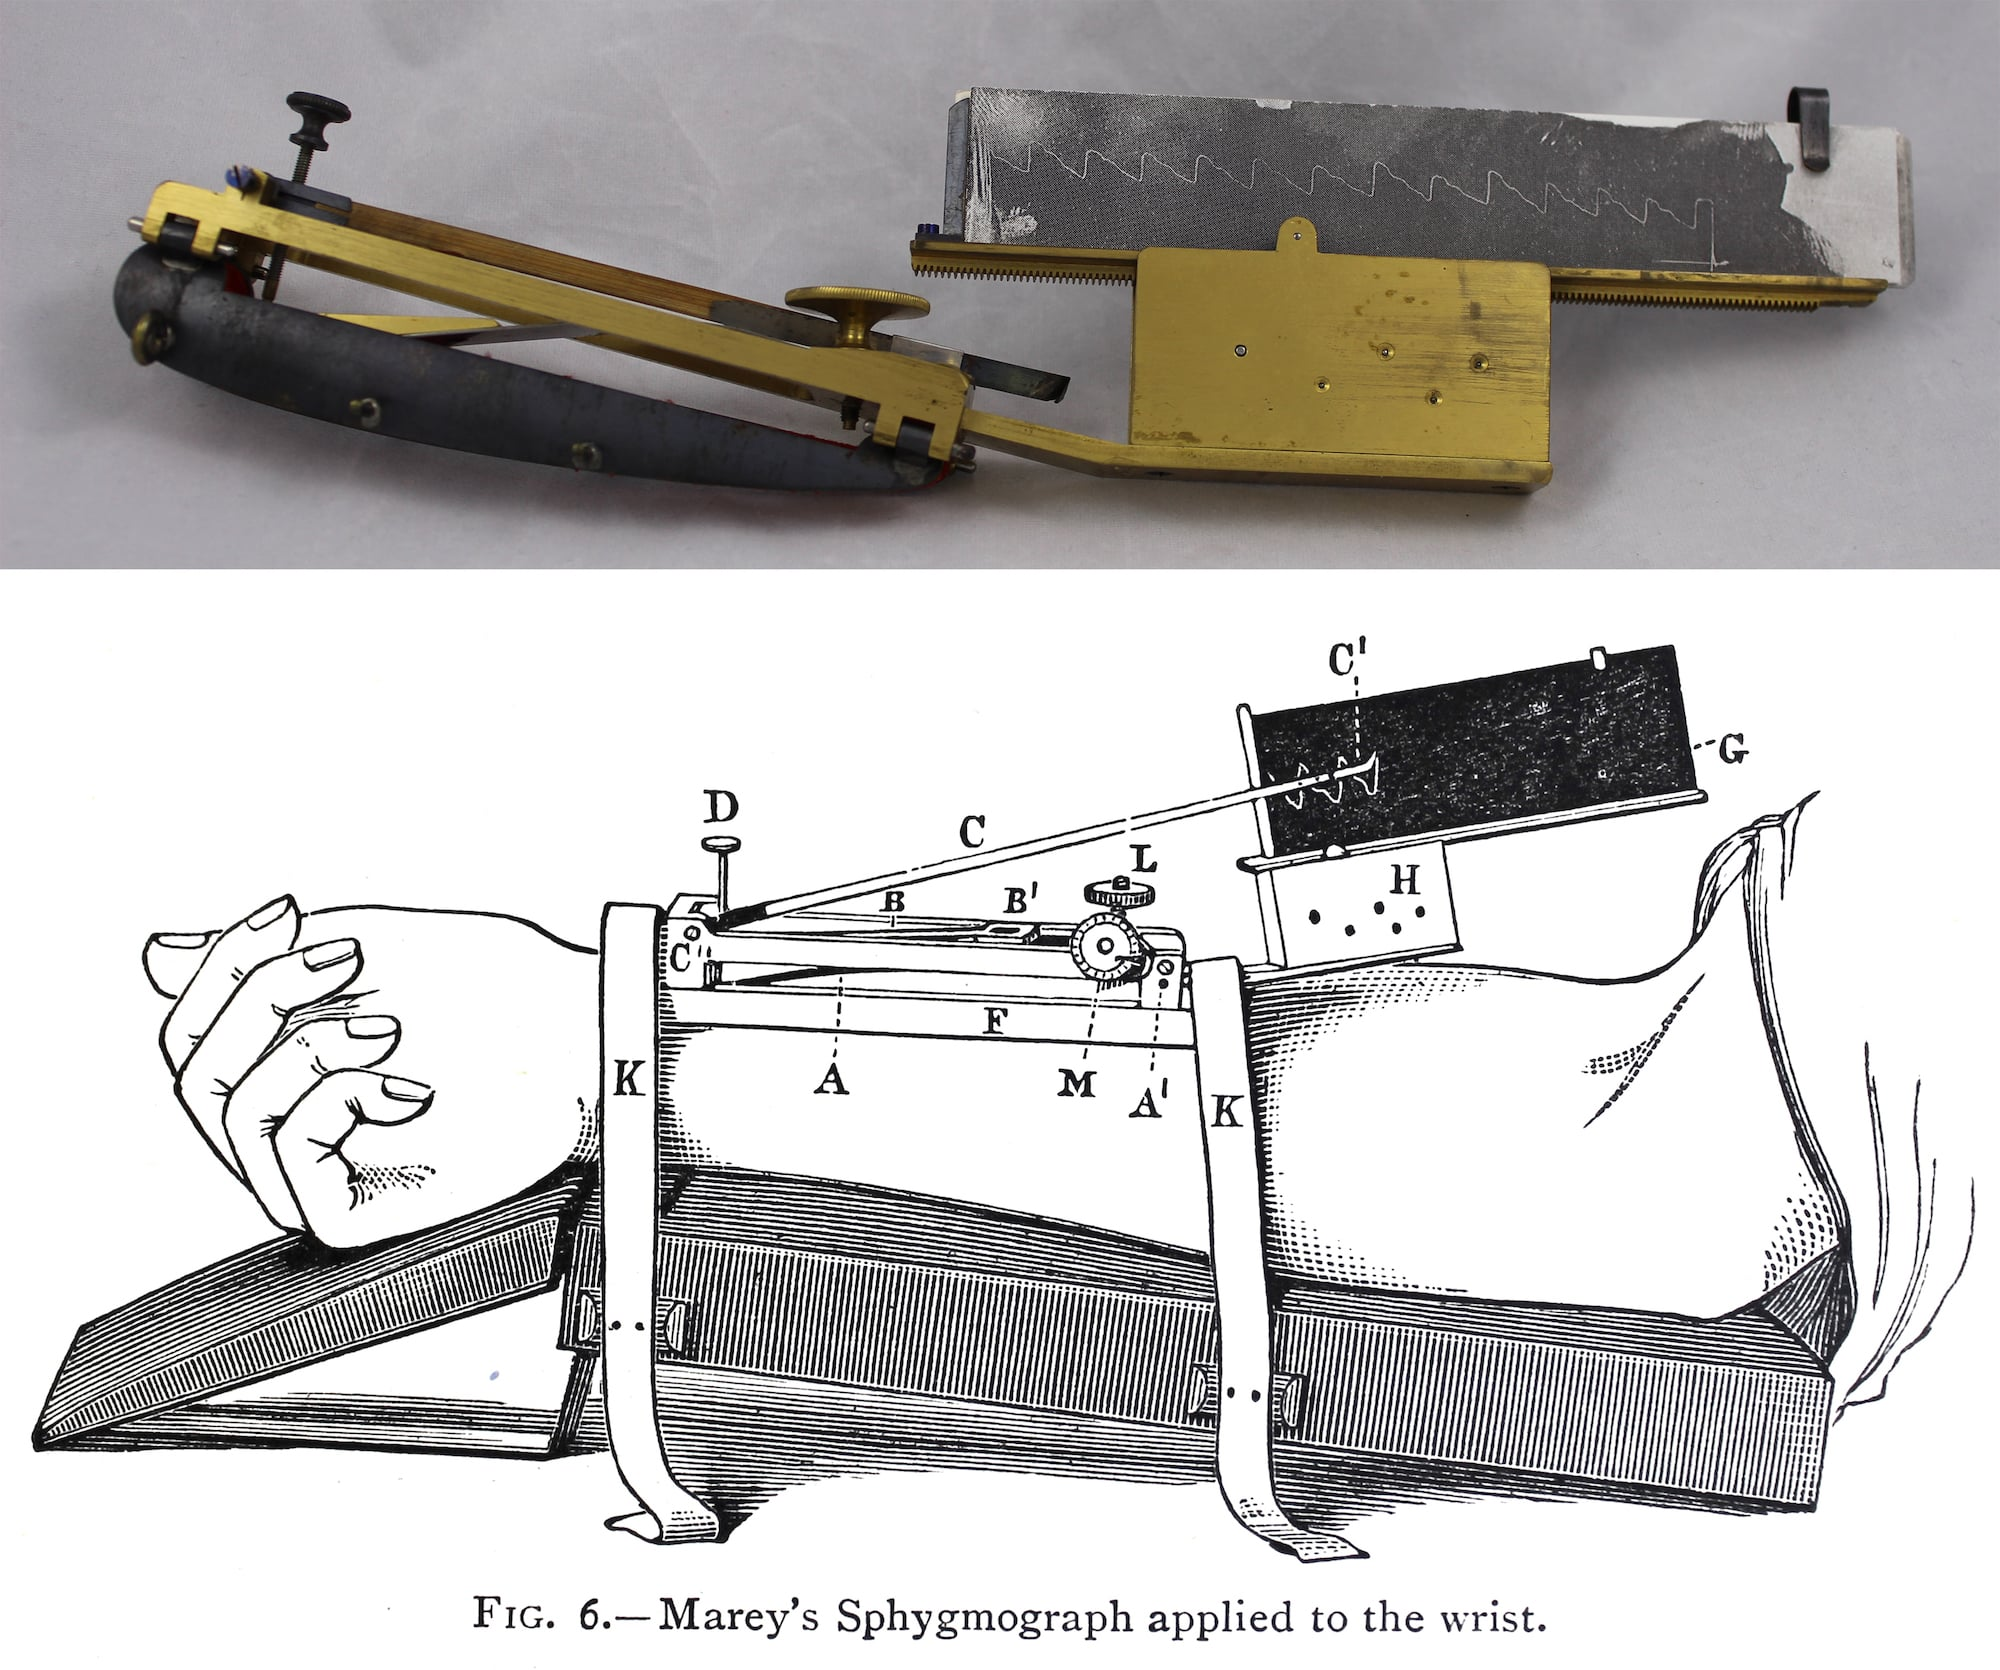 Photograph of a sphygmograph above and an illustration of it attached to a wrist below.